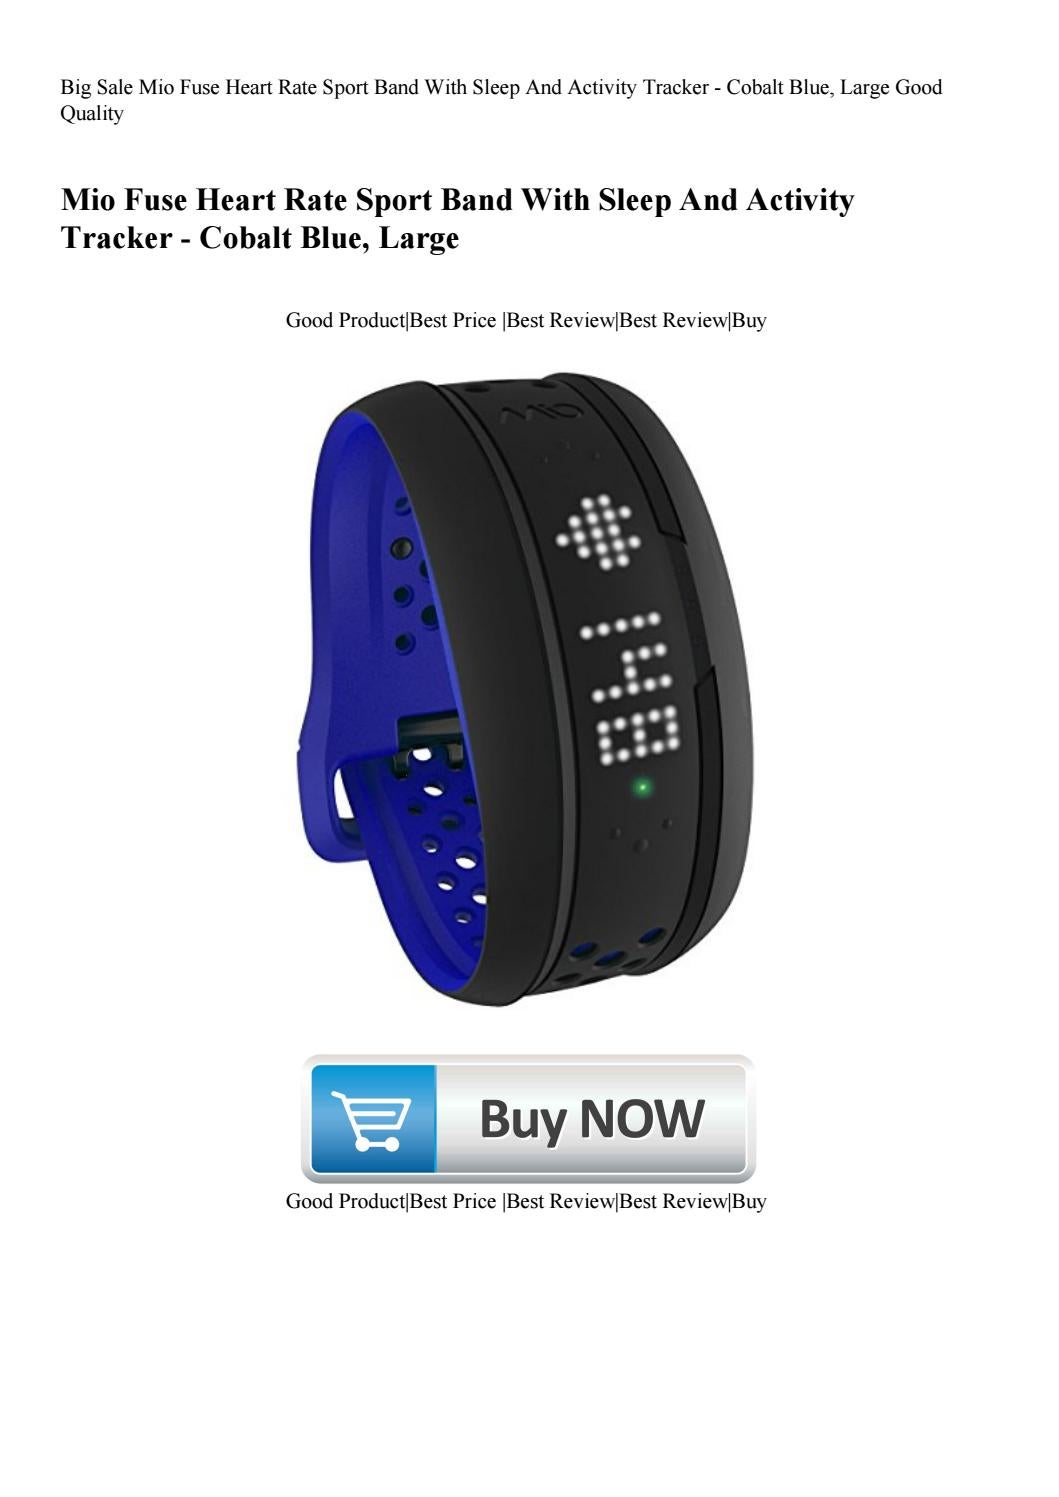 Big Sale Mio Fuse Heart Rate Sport Band With Sleep And